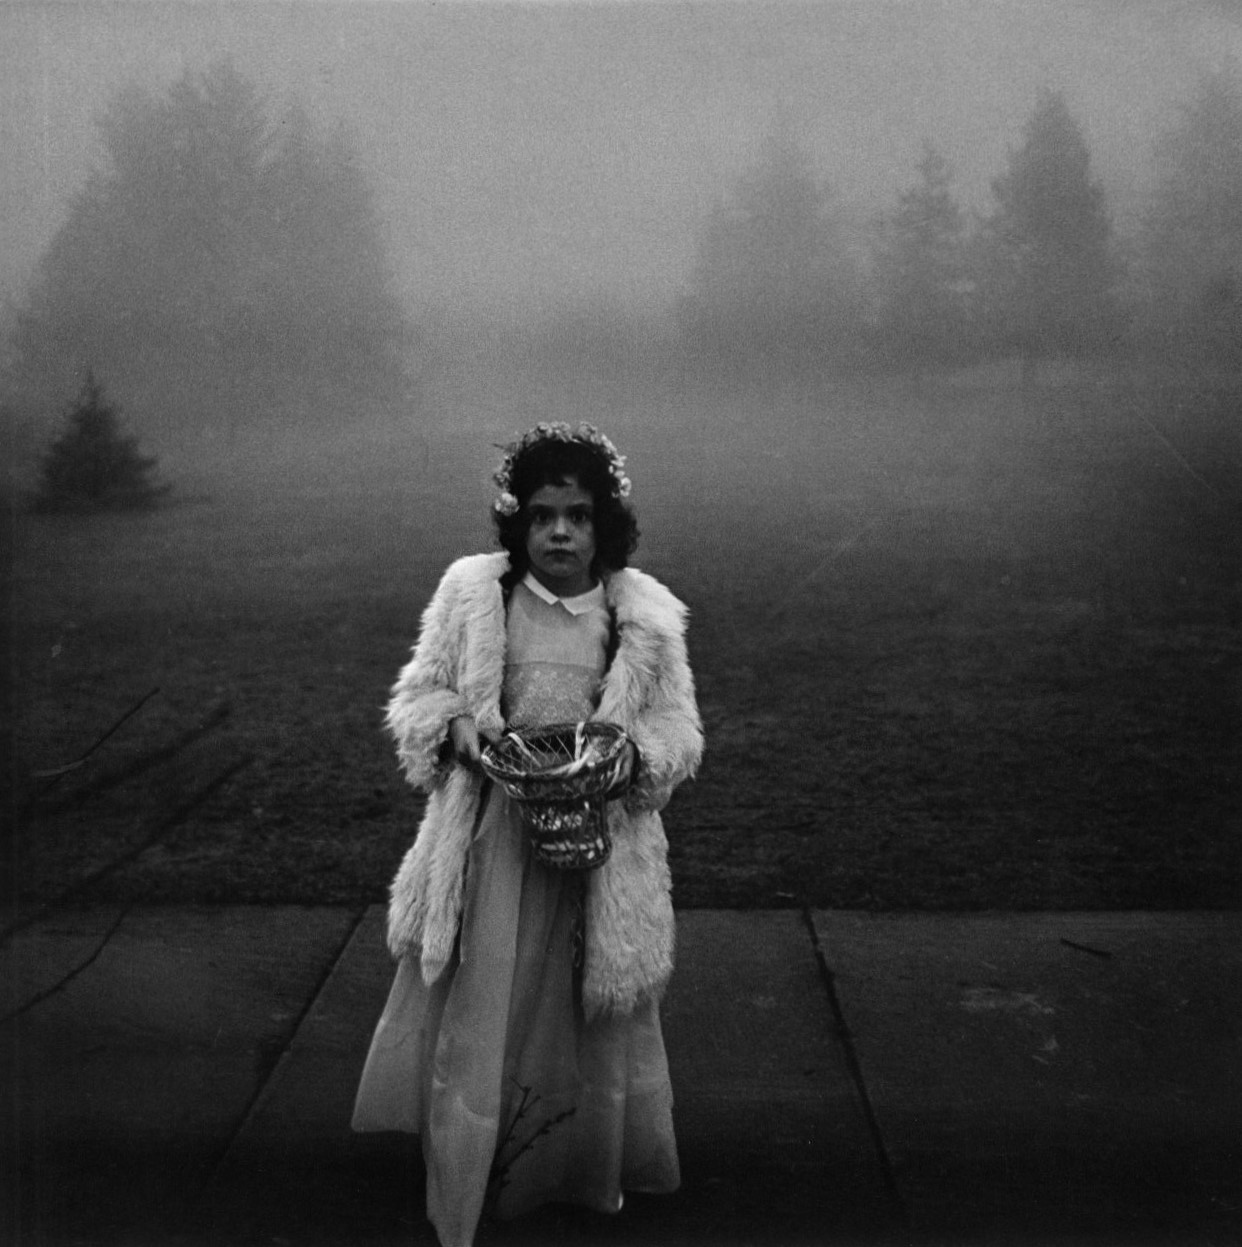 Bridesmaid with a basket of flowers at a wedding conn 1964 photography diane arbus